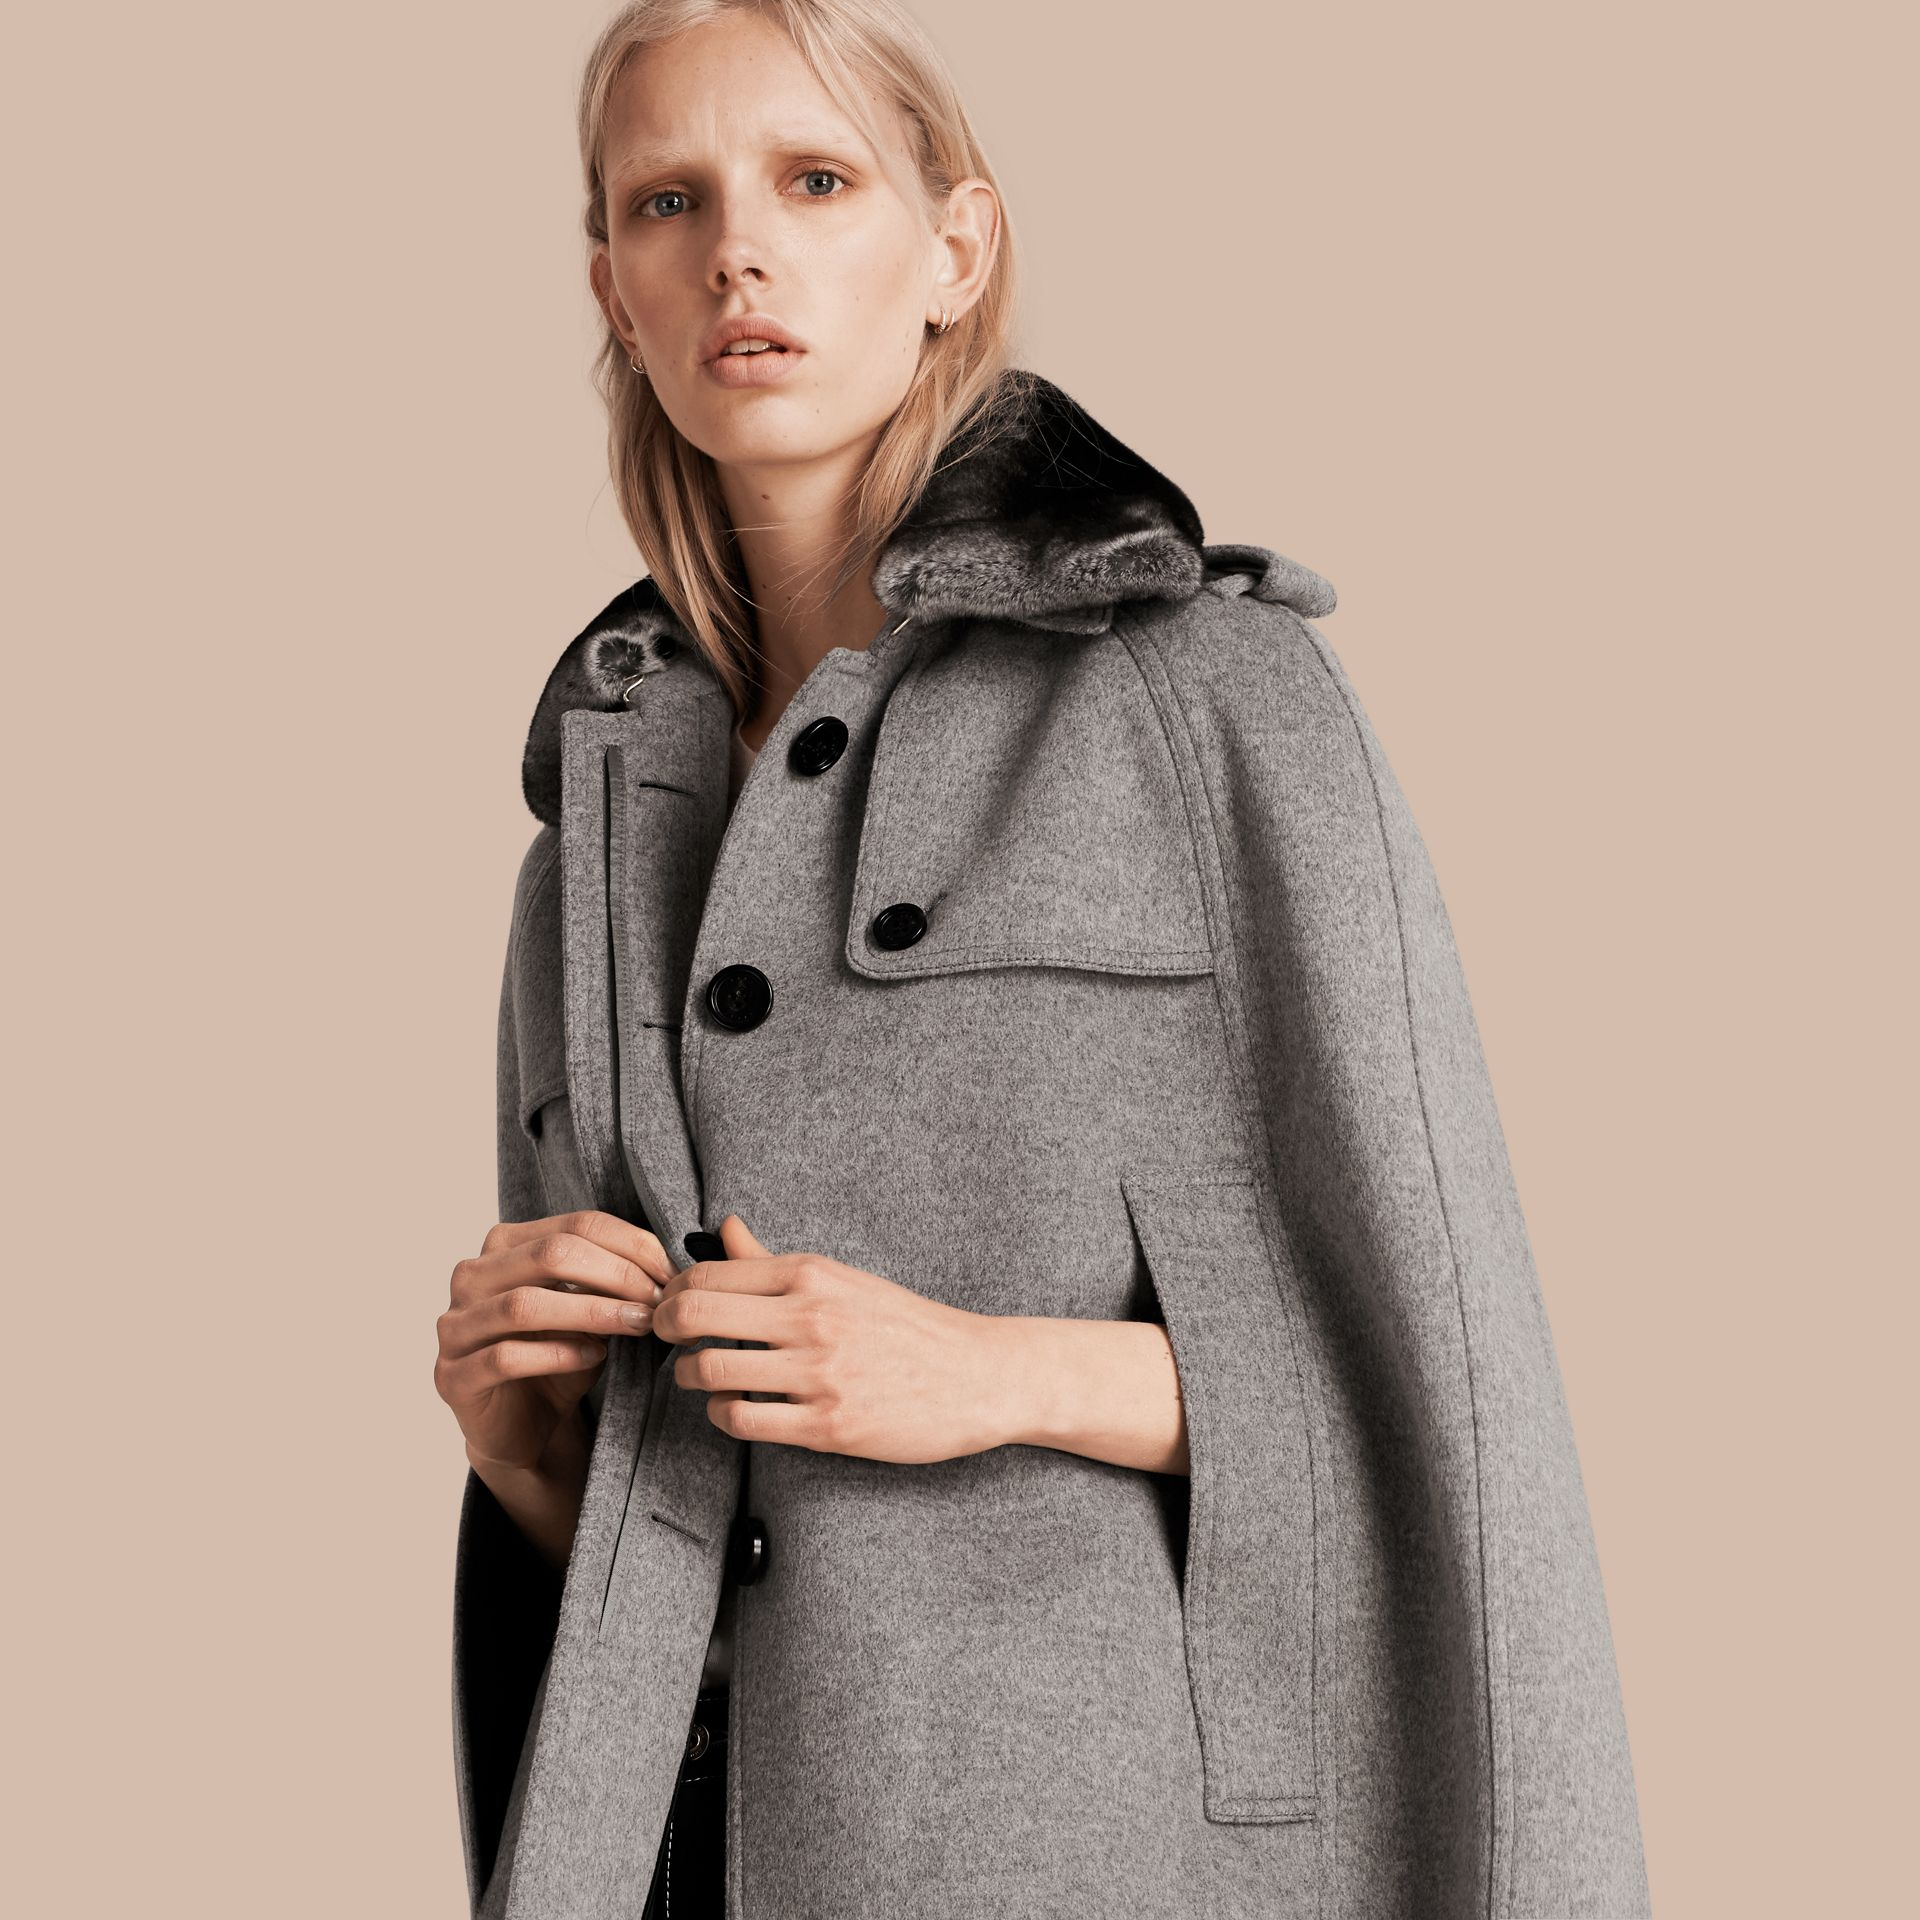 Pale grey melange Wool Cashmere Trench Cape with Detachable Fur Collar - gallery image 1